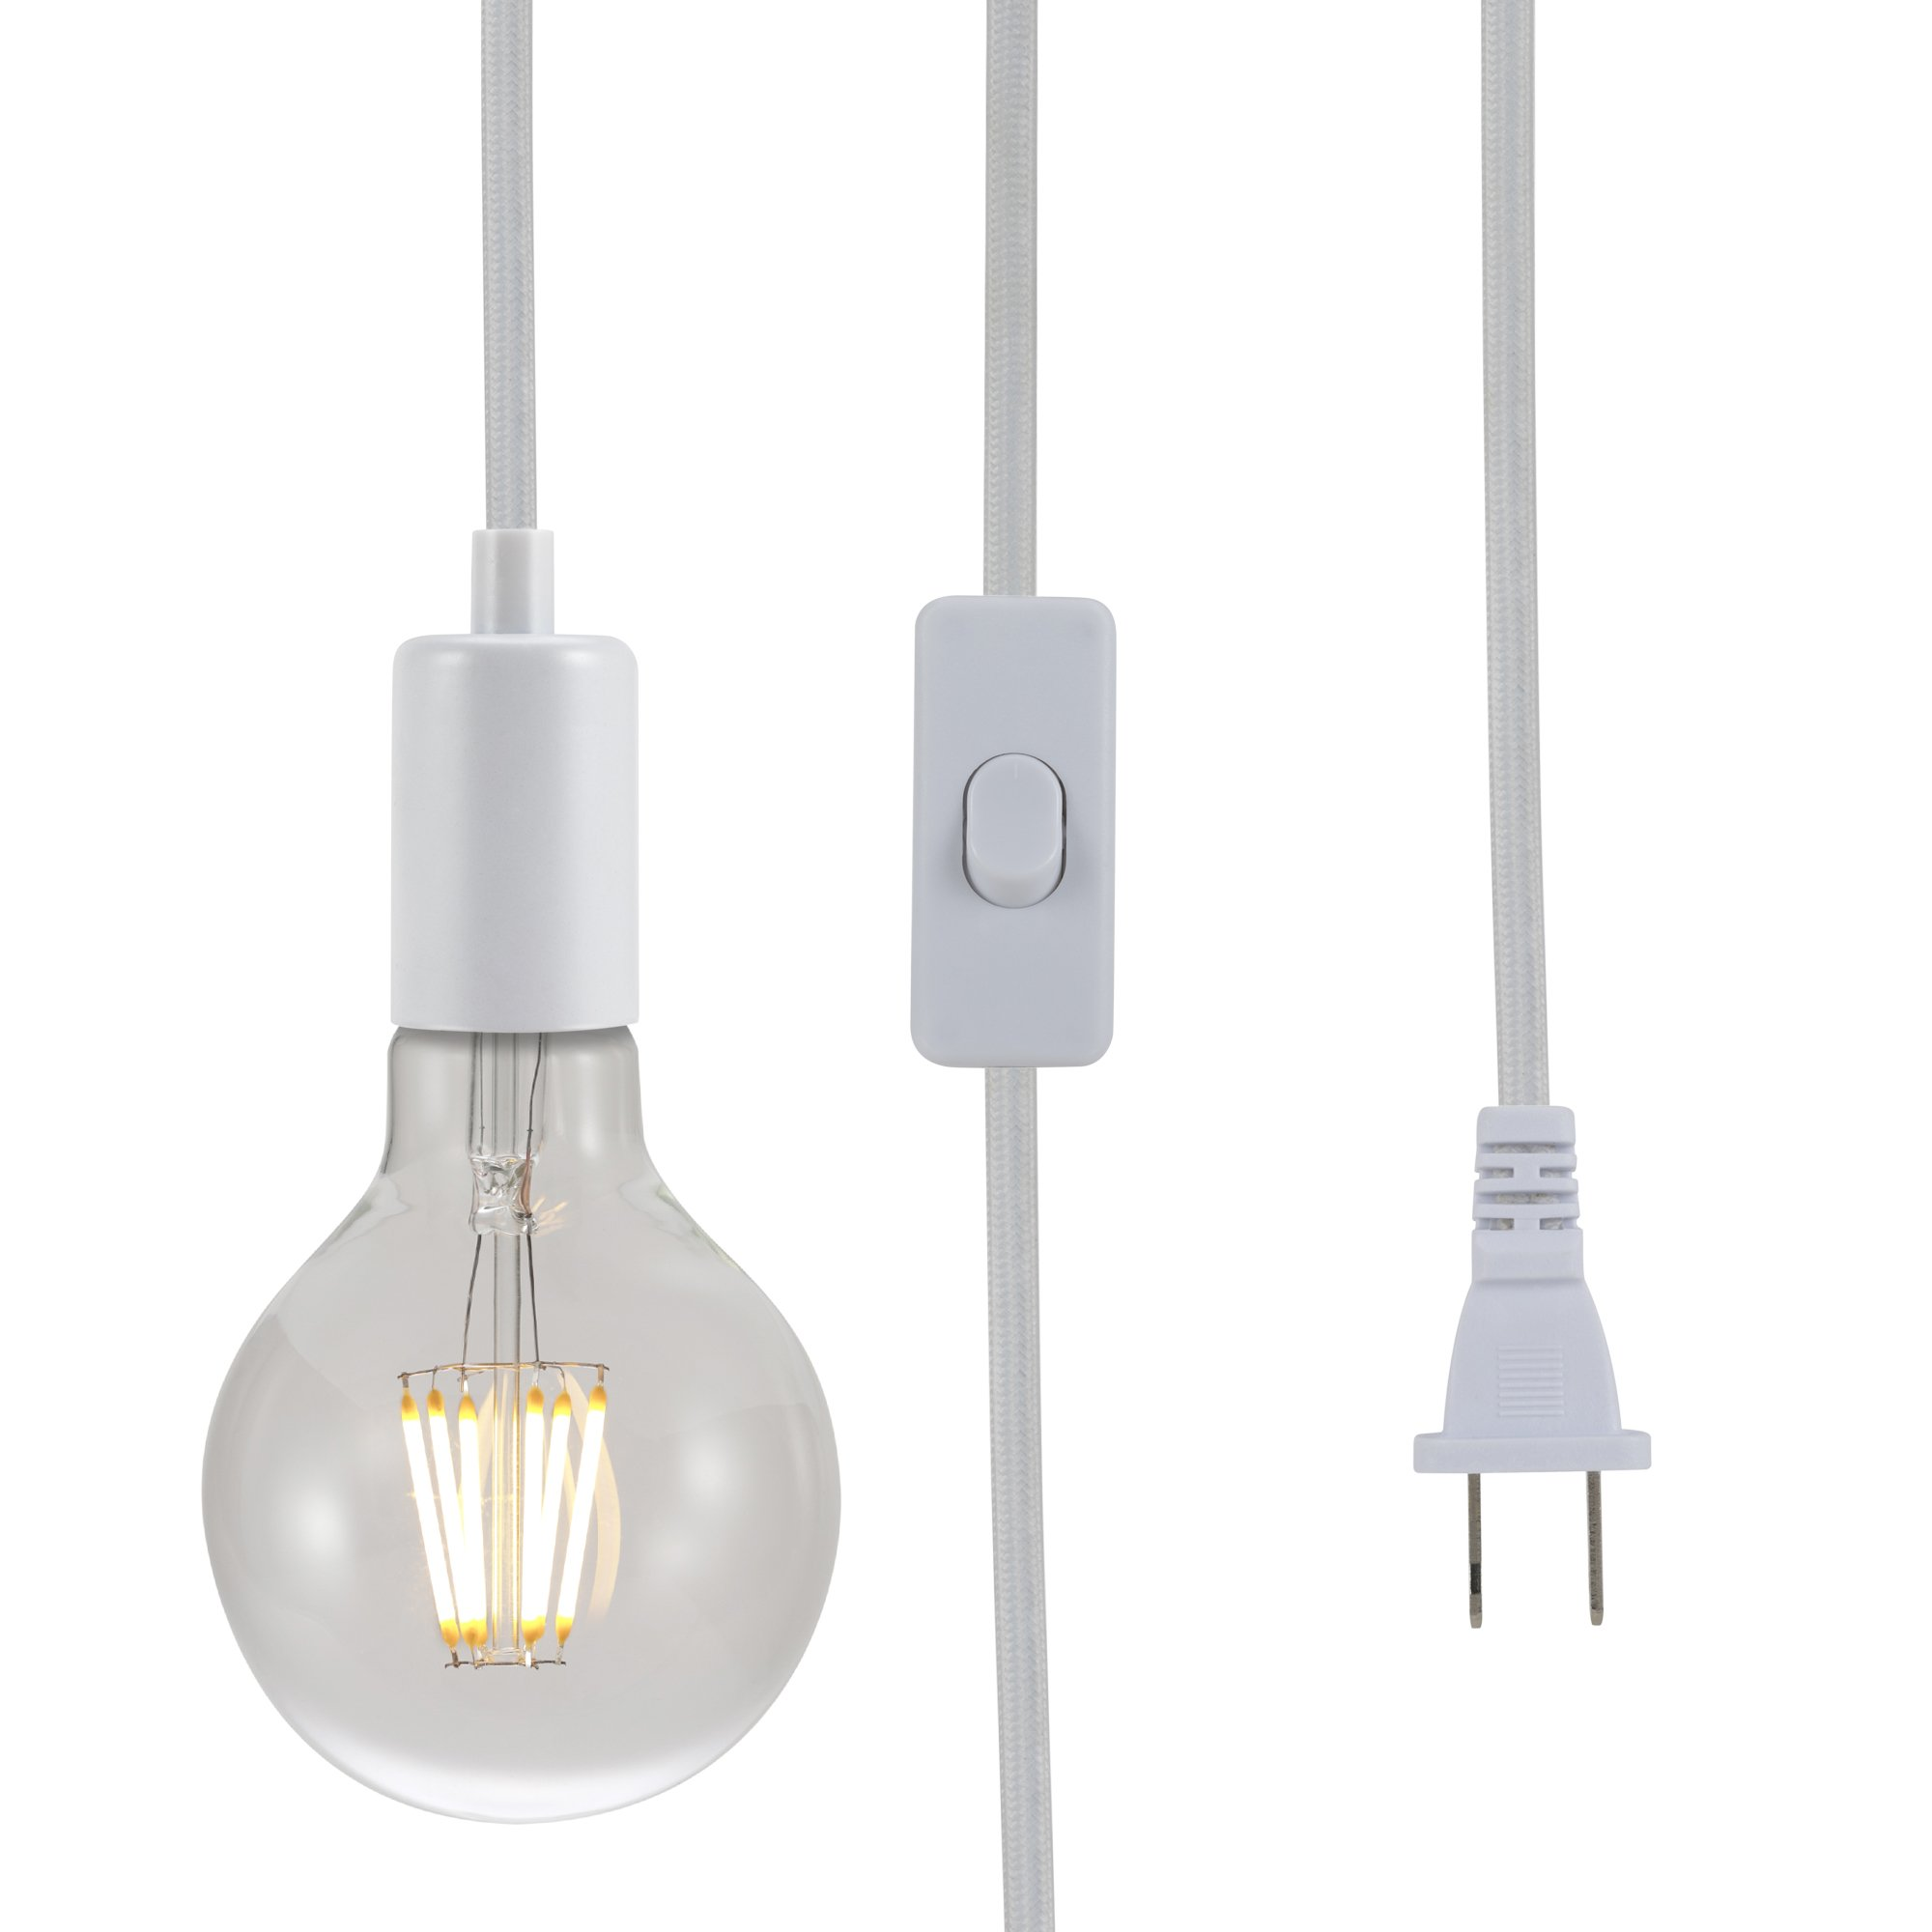 1 light portable hanging plug in vintage pendant white swag hooks 1 light portable hanging plug in vintage pendant white swag hooks ceiling lamp aloadofball Image collections